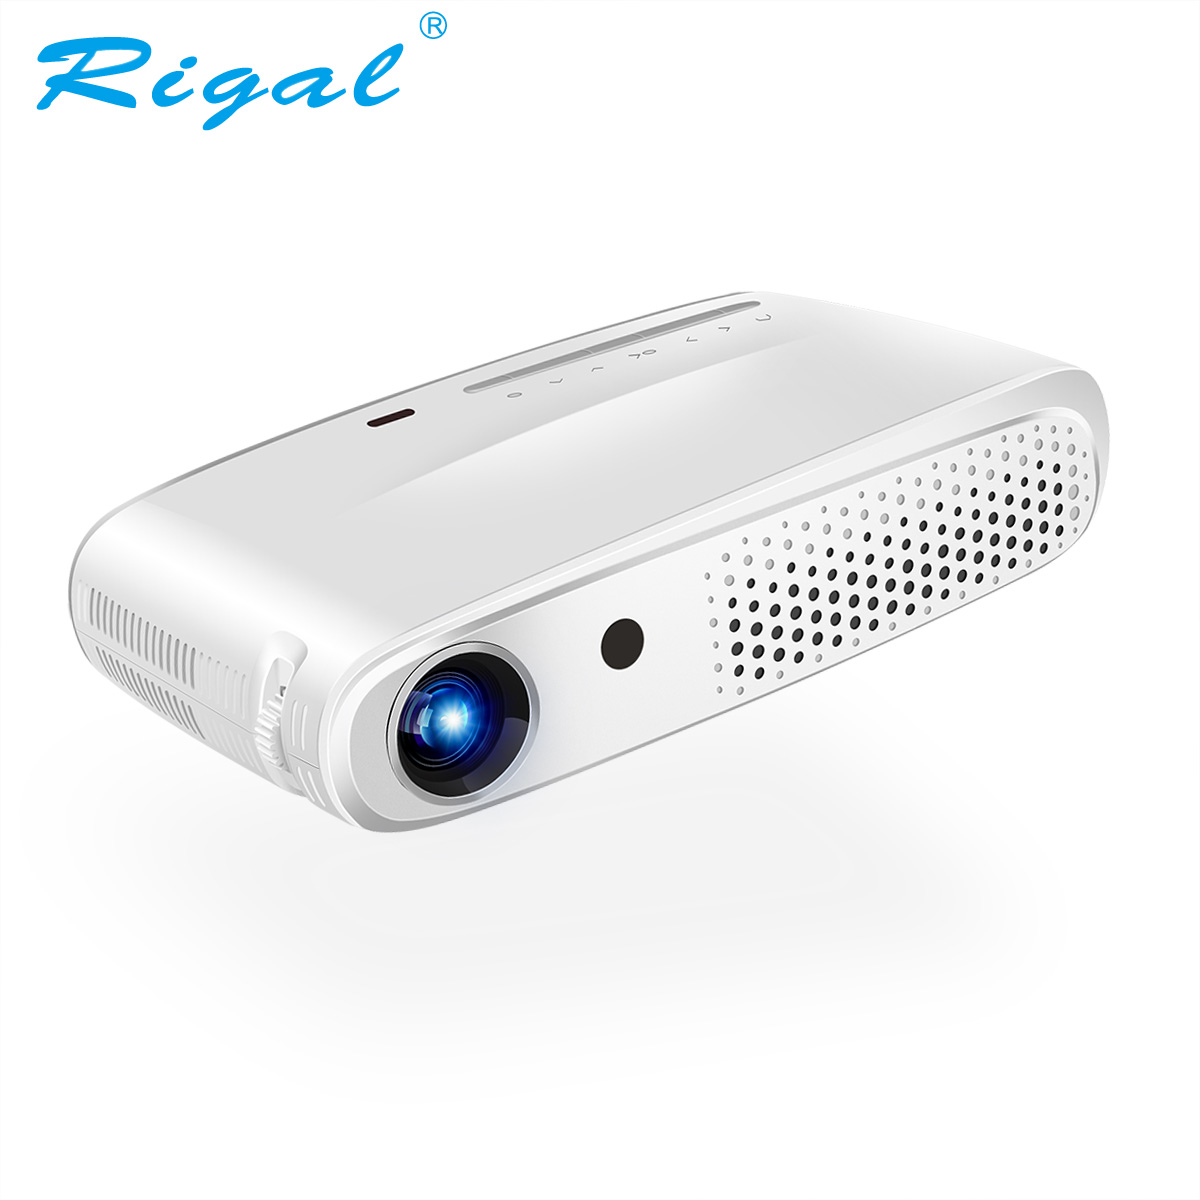 Rigal RD602 DLP Mini 3D Projector 600ANSI Lumens Android WiFi Projector Active Shutter 3D Full HD 1080P Business Home LED Beamer цена